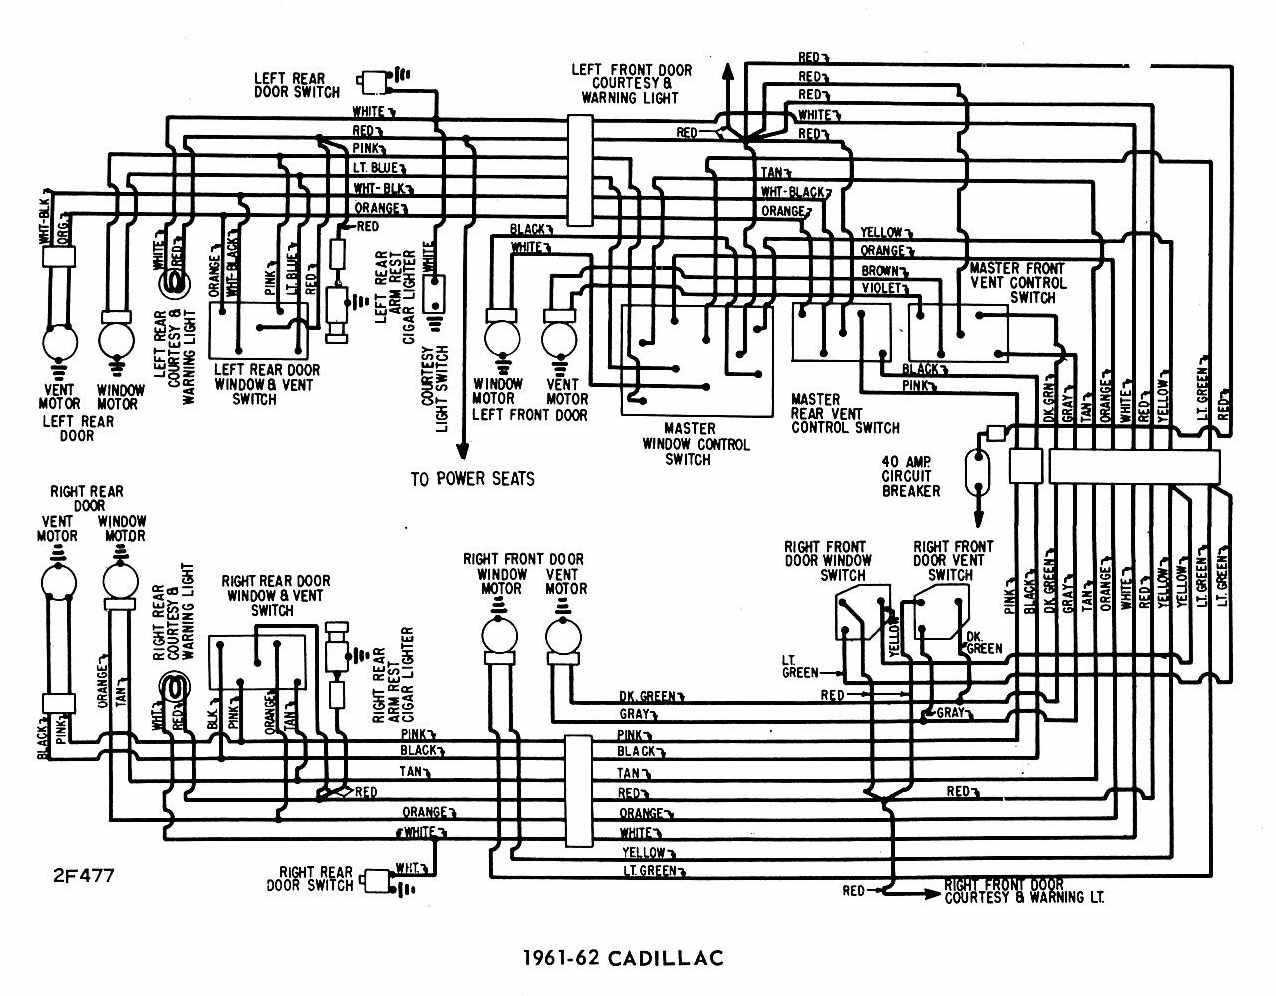 82bni Cadillac Cts Need Wiring Diagram 2012 Cts Mirror also Page3 in addition P0008 also Cadillac 1961 1962 Windows Wiring further 1990 Cadillac Seville Problems. on cadillac cts wiring diagram